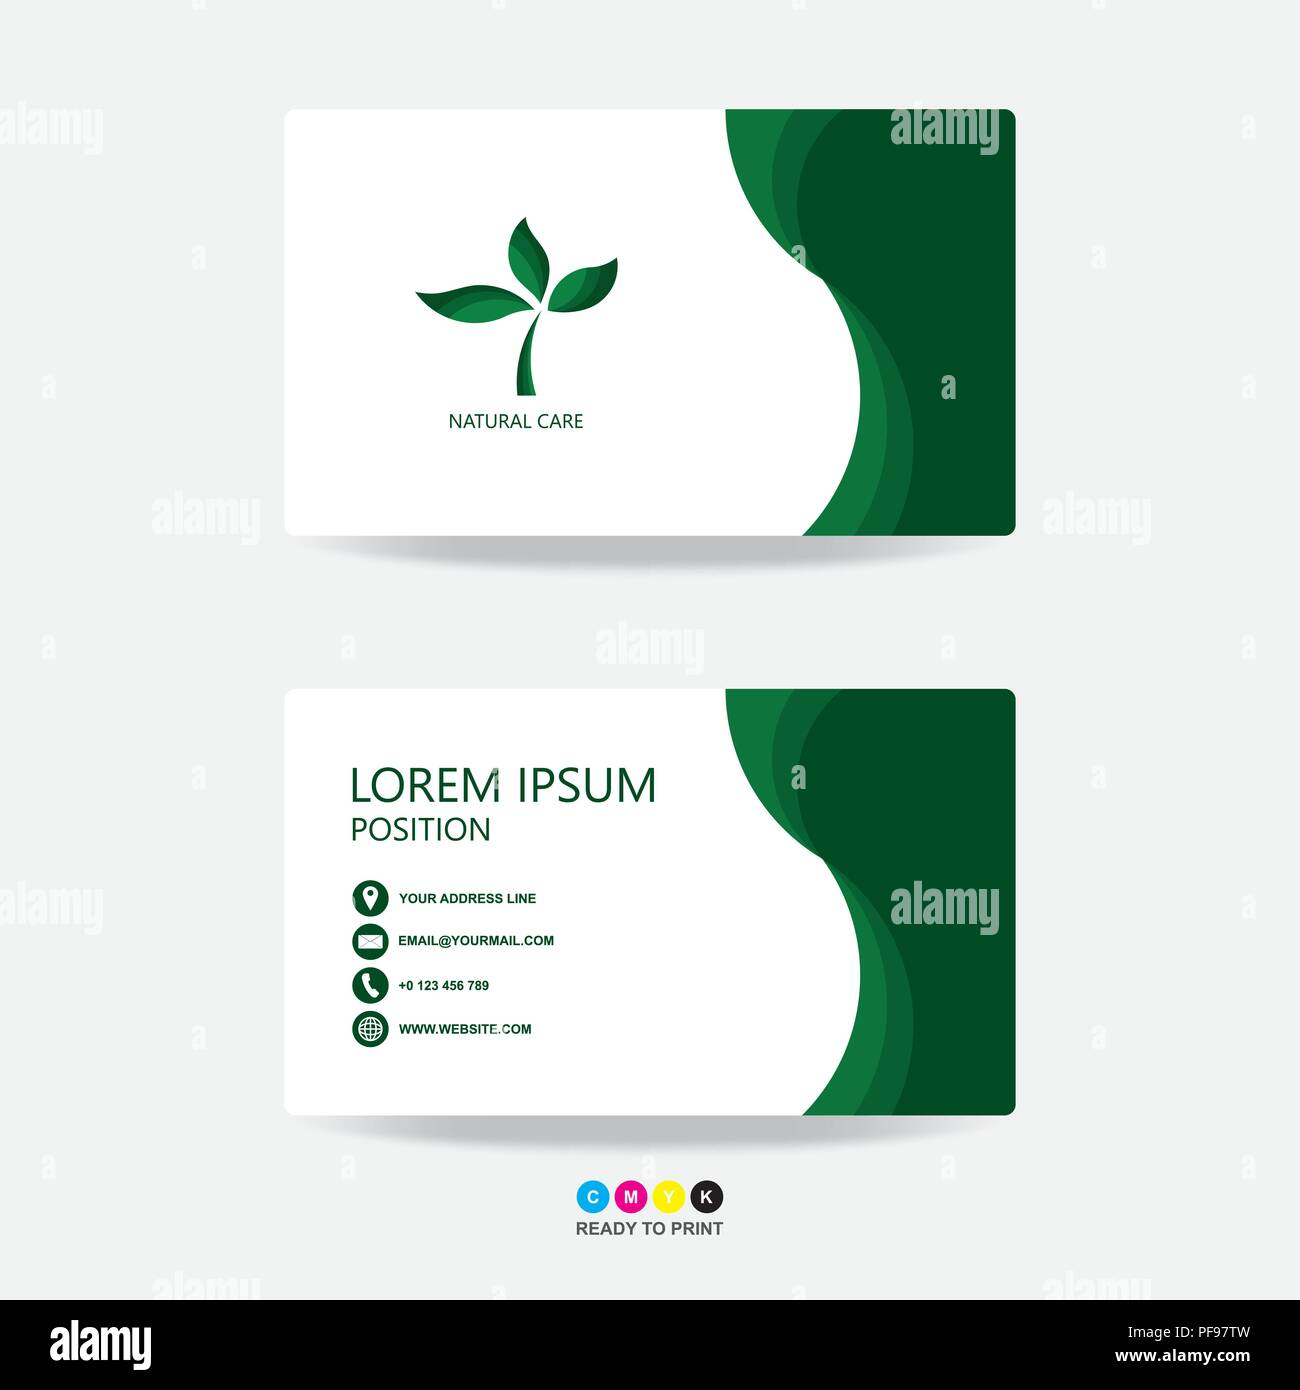 green nature business card template design green leafs nature contact card for company front and back side green and white on the gray background v PF97TW